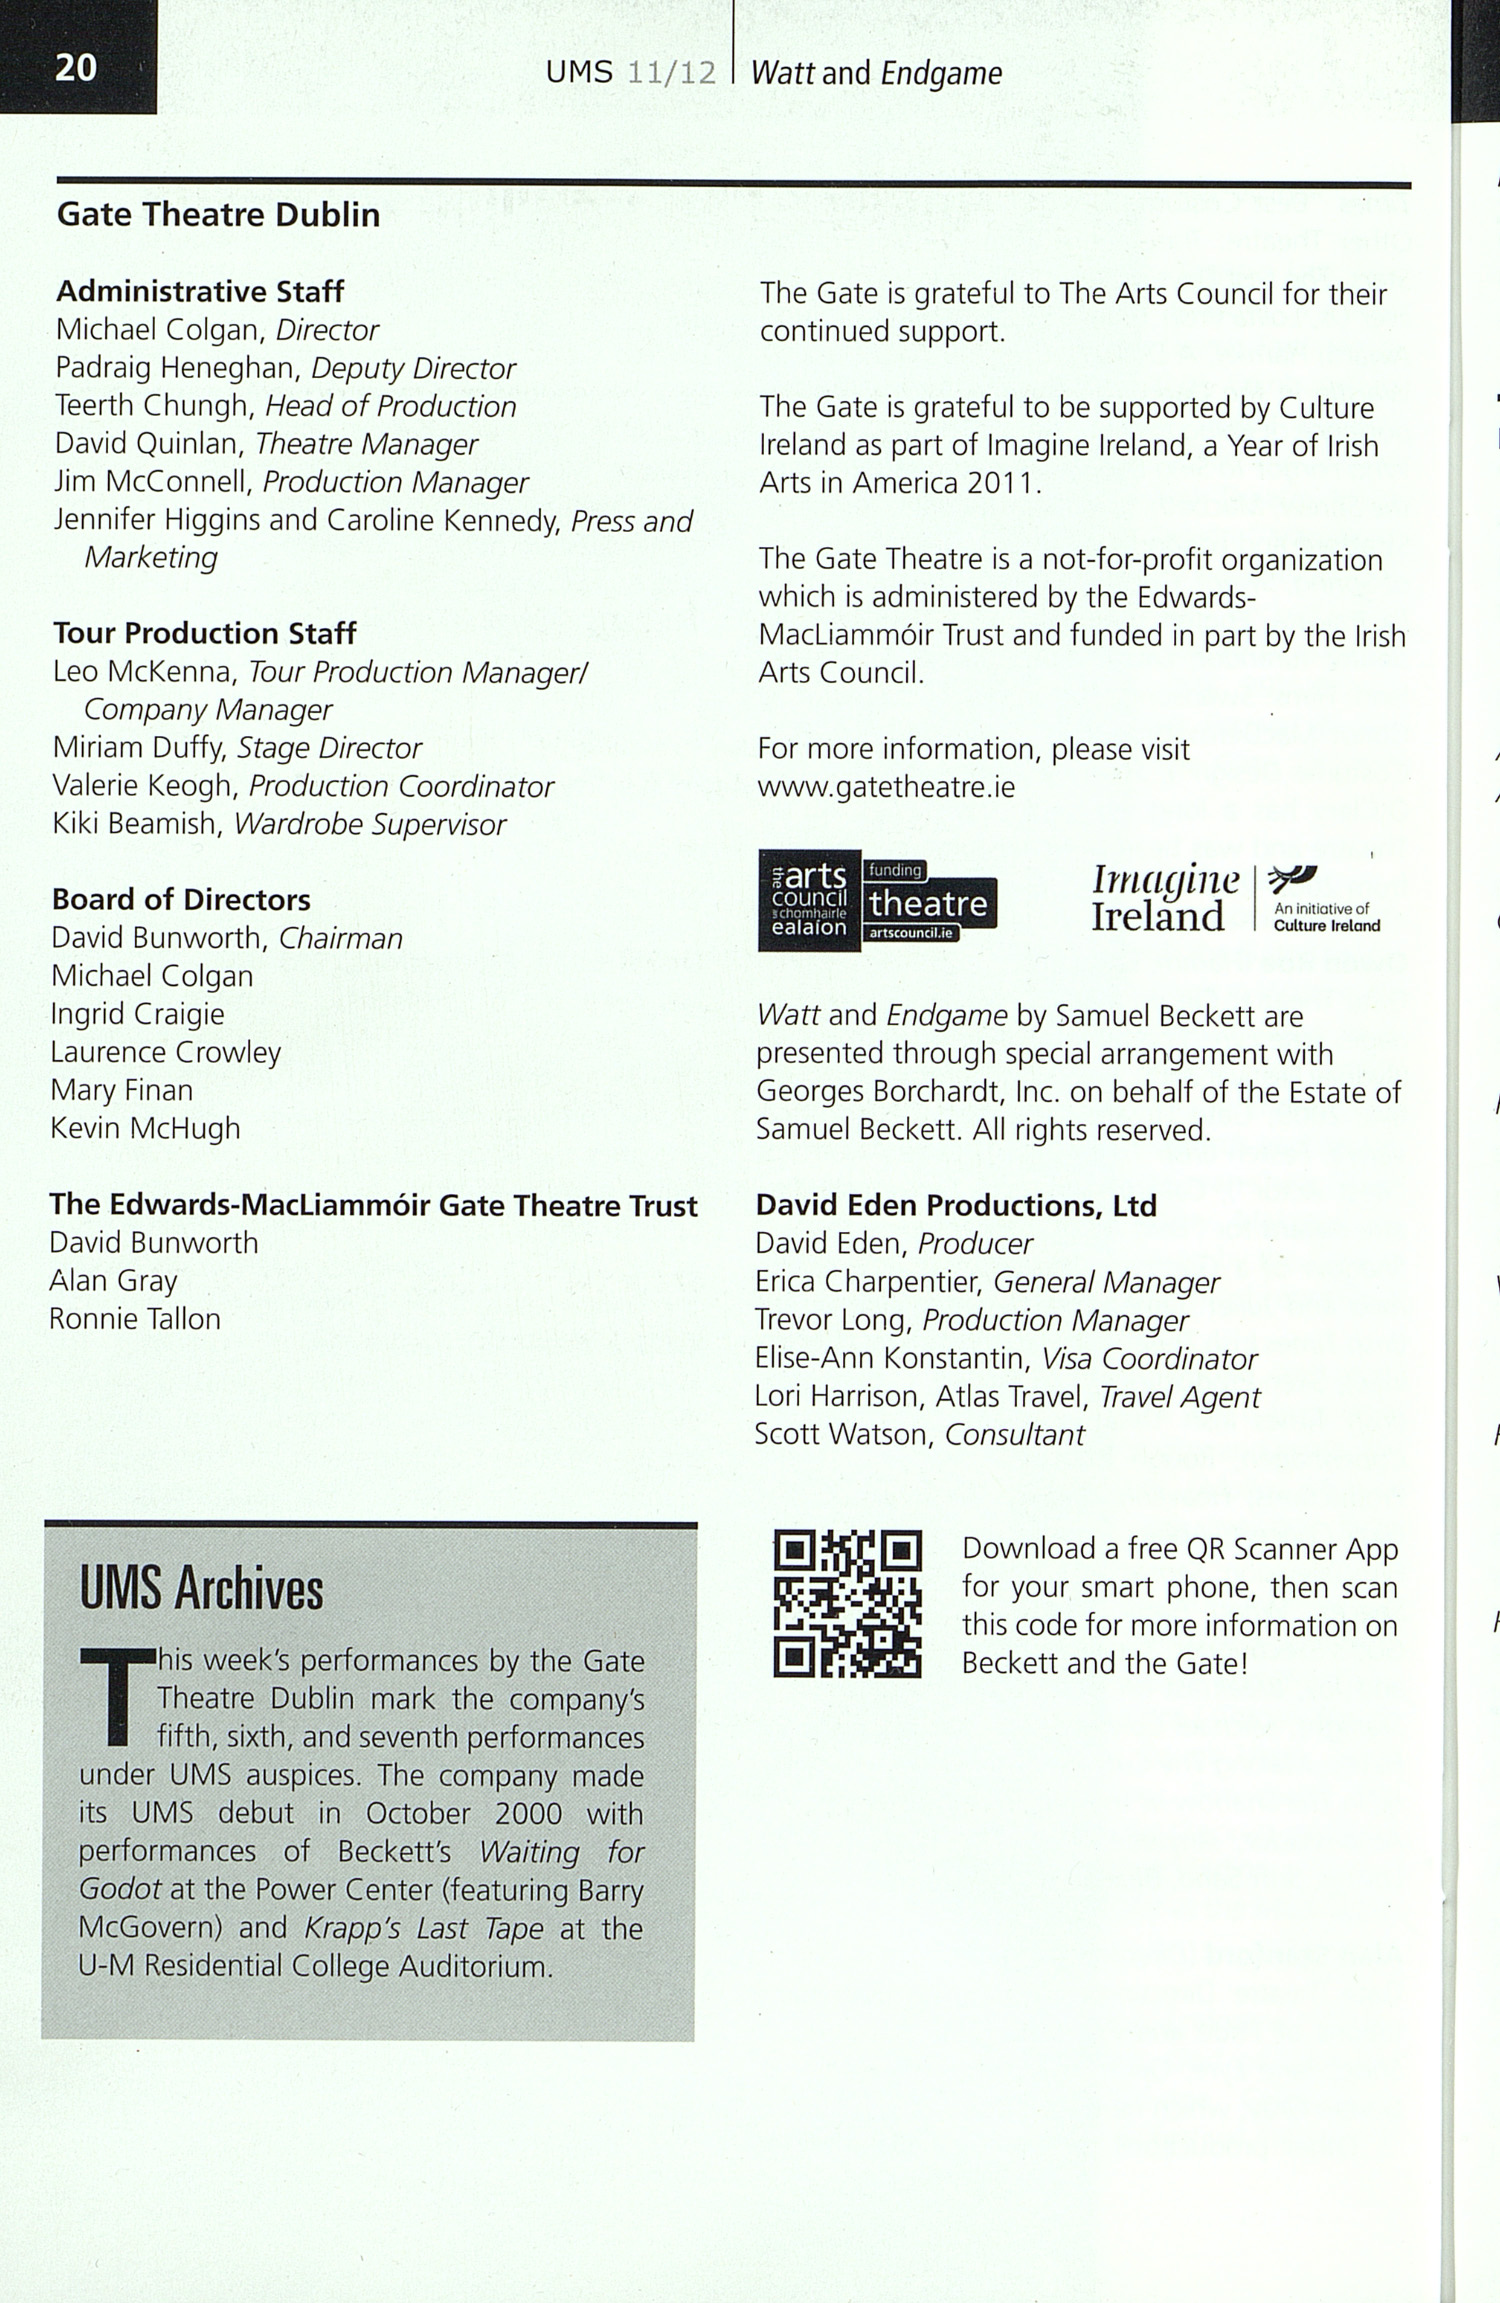 UMS Concert Program, Thursday Oct. 27 To Nov. 05: University Musical Society: Fall 2011 - Thursday Oct. 27 To Nov. 05 --  image